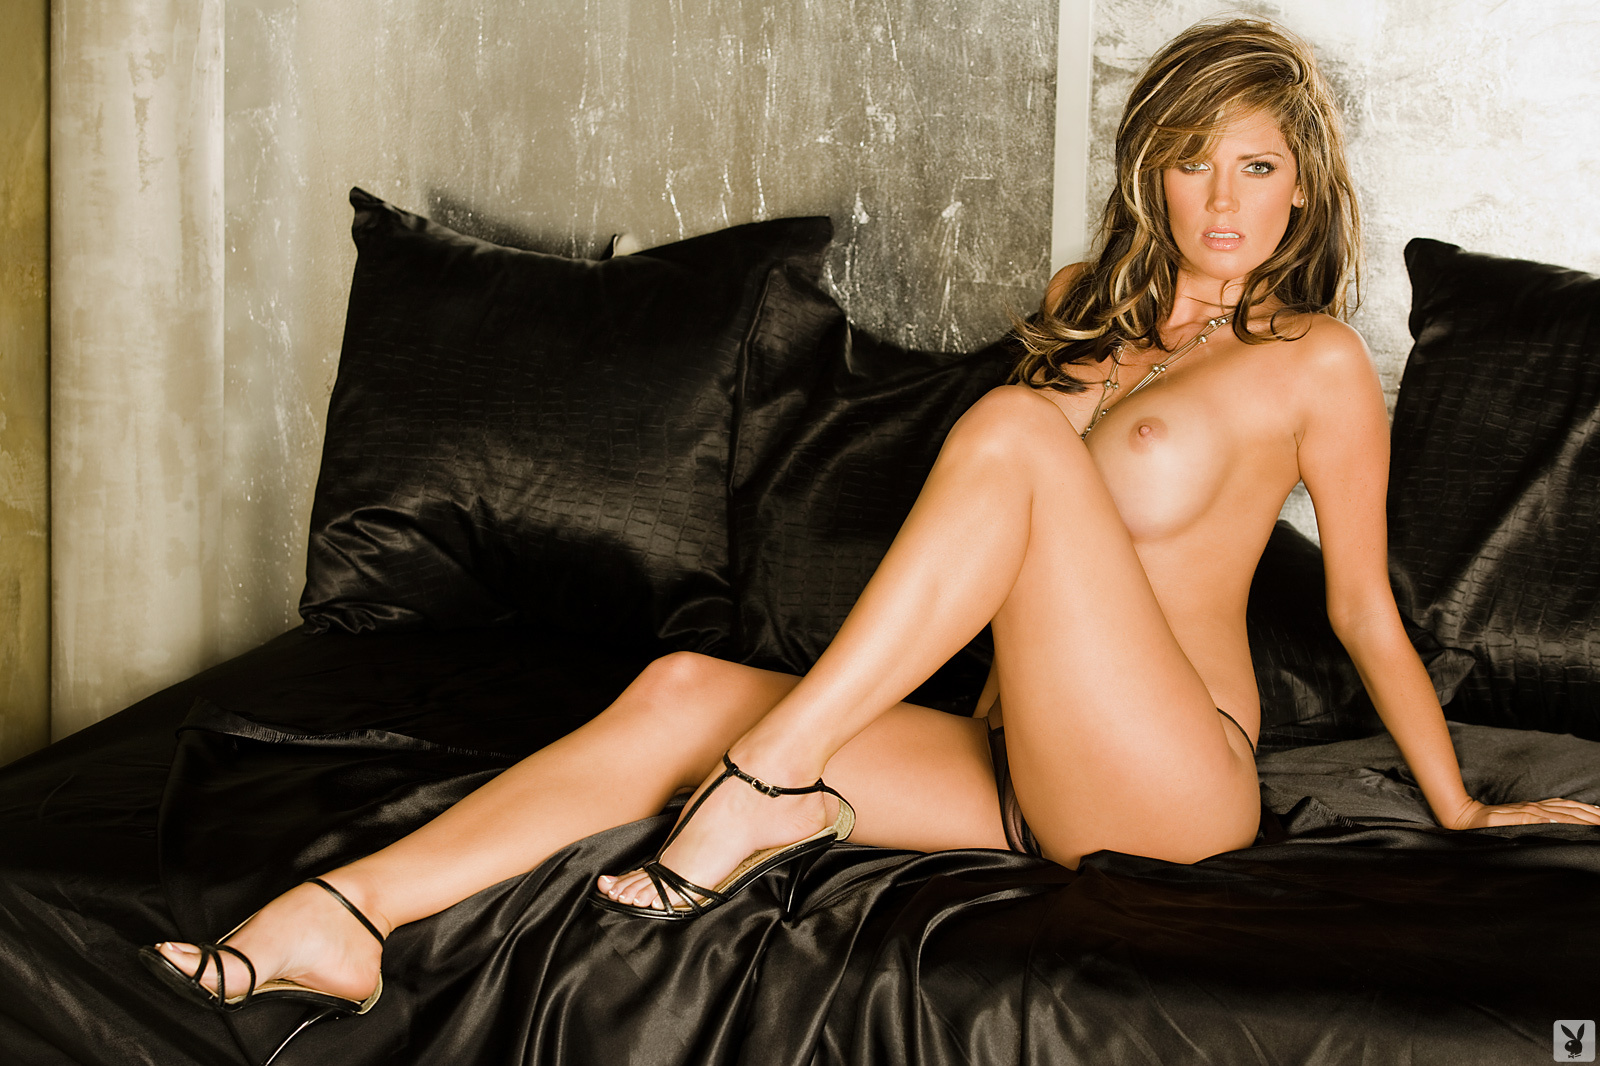 Playmate Exclusive May 2009 Crystal Mccahill0006